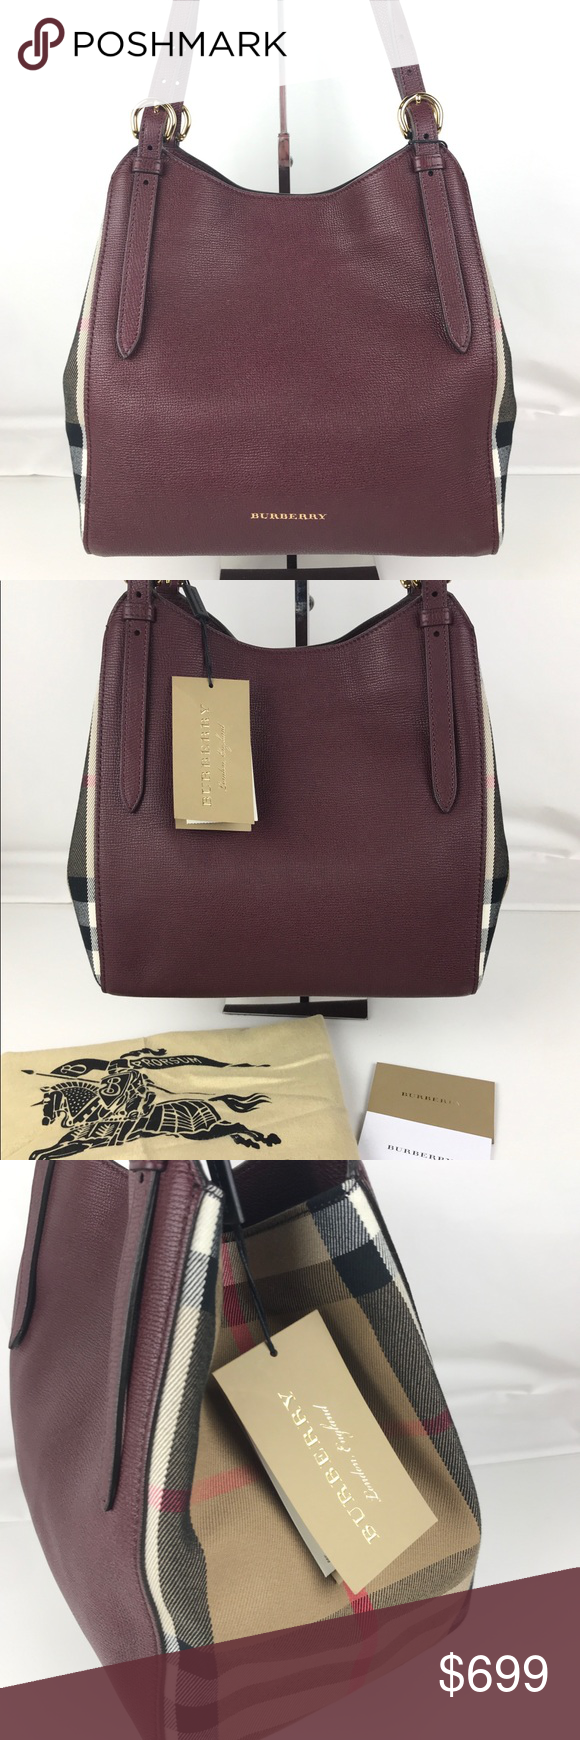 363d9689a2cf Burberry Small Canter Mahogany Red Leather Tote Authentic Burberry Style  3963029. New with Tag